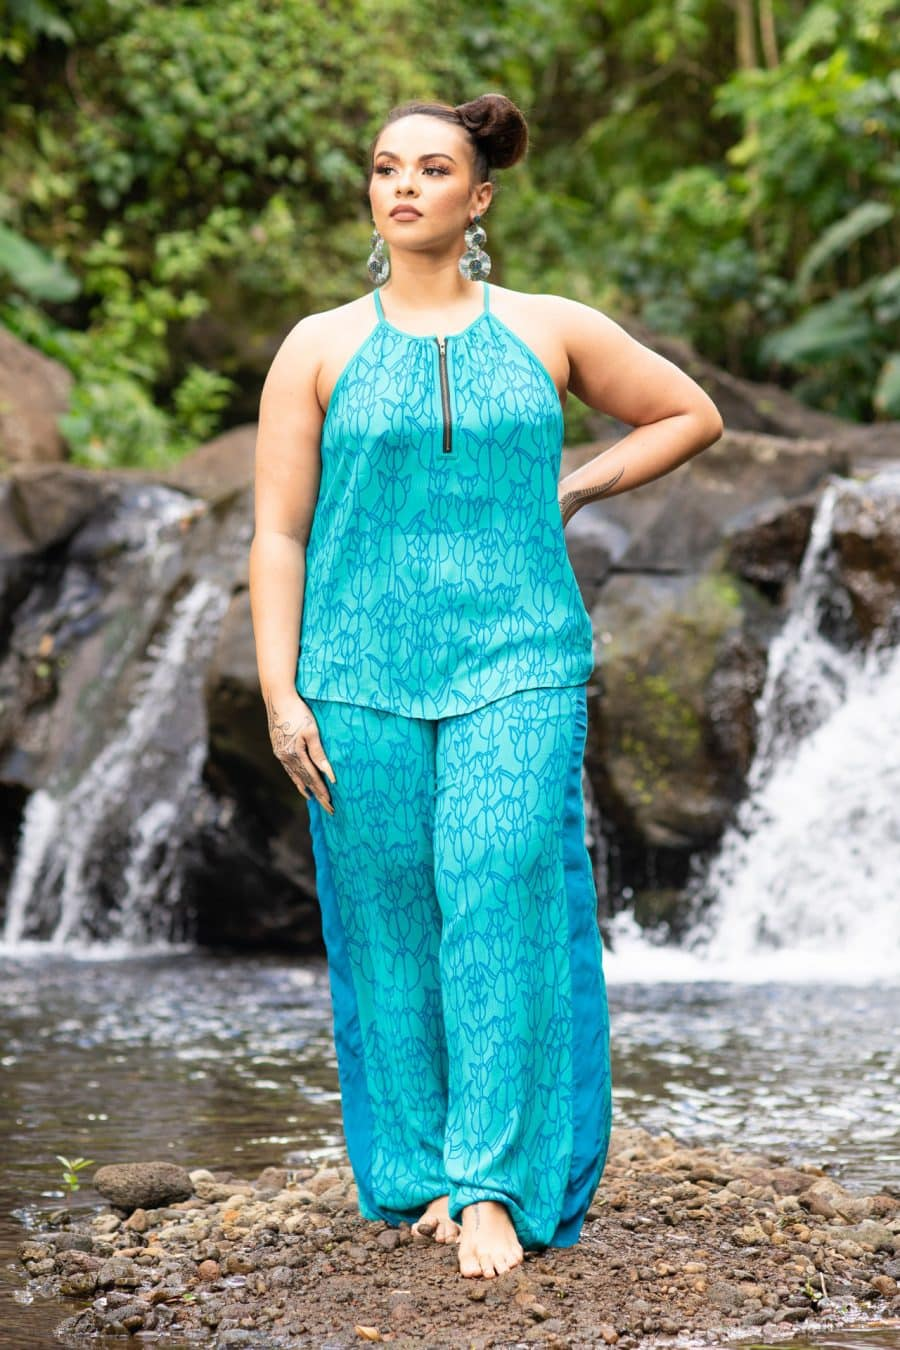 Model wearing Ola Pant in Blue Grass/Prov. Blue Kapualiko - Front View